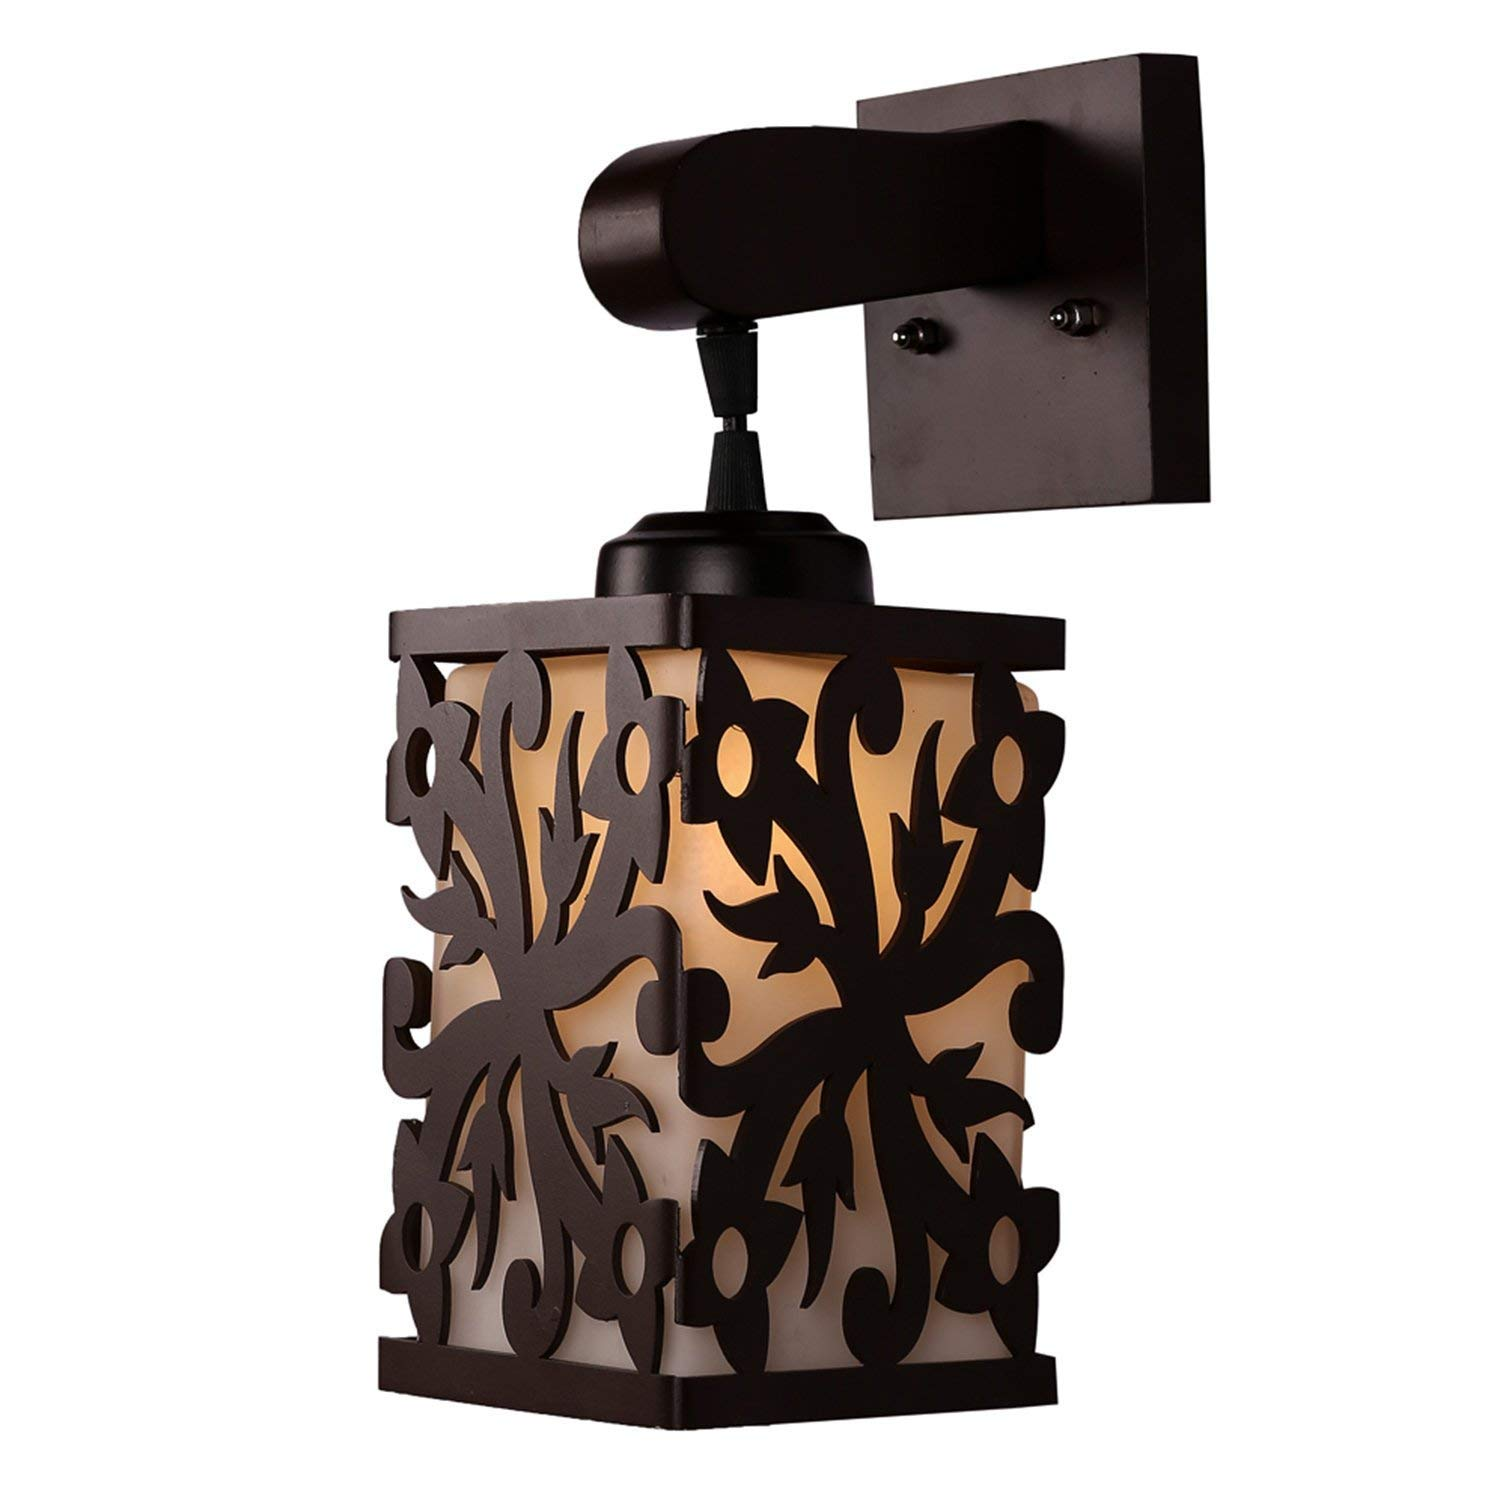 Vojok  Mdf  Brown Decorative Wall Lamp